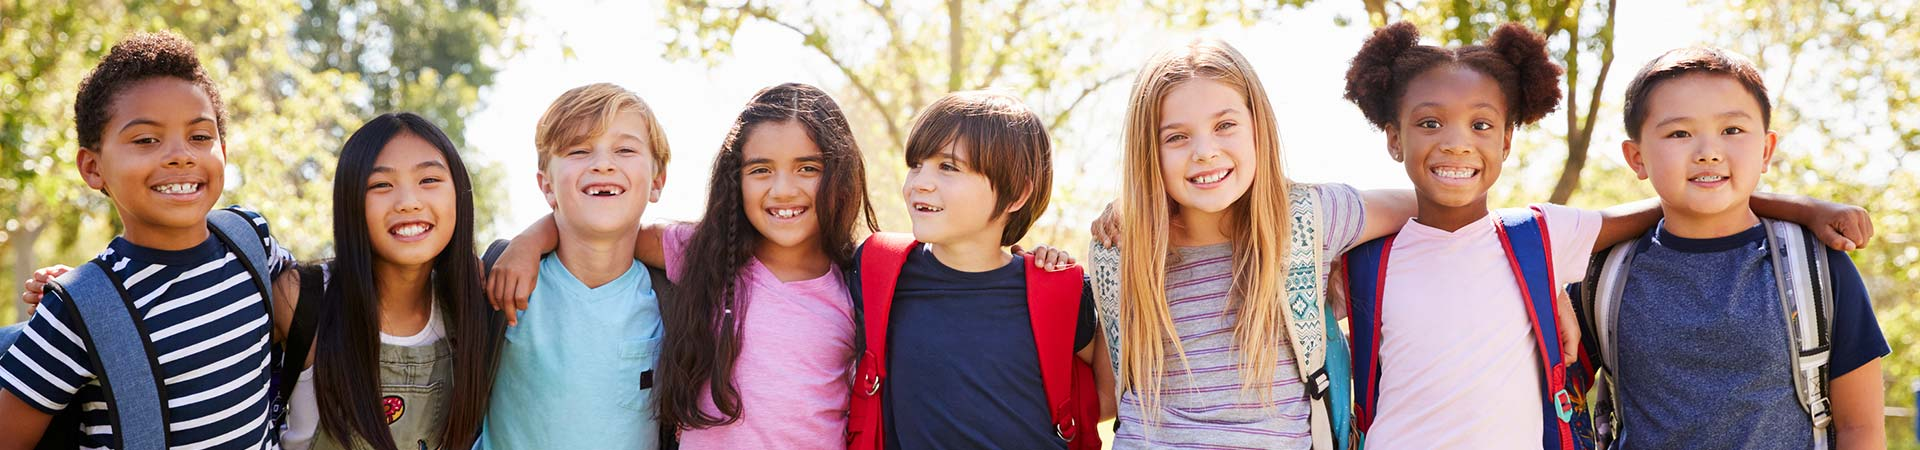 3 Back to School Tips for Braces Wearers Marietta, GA